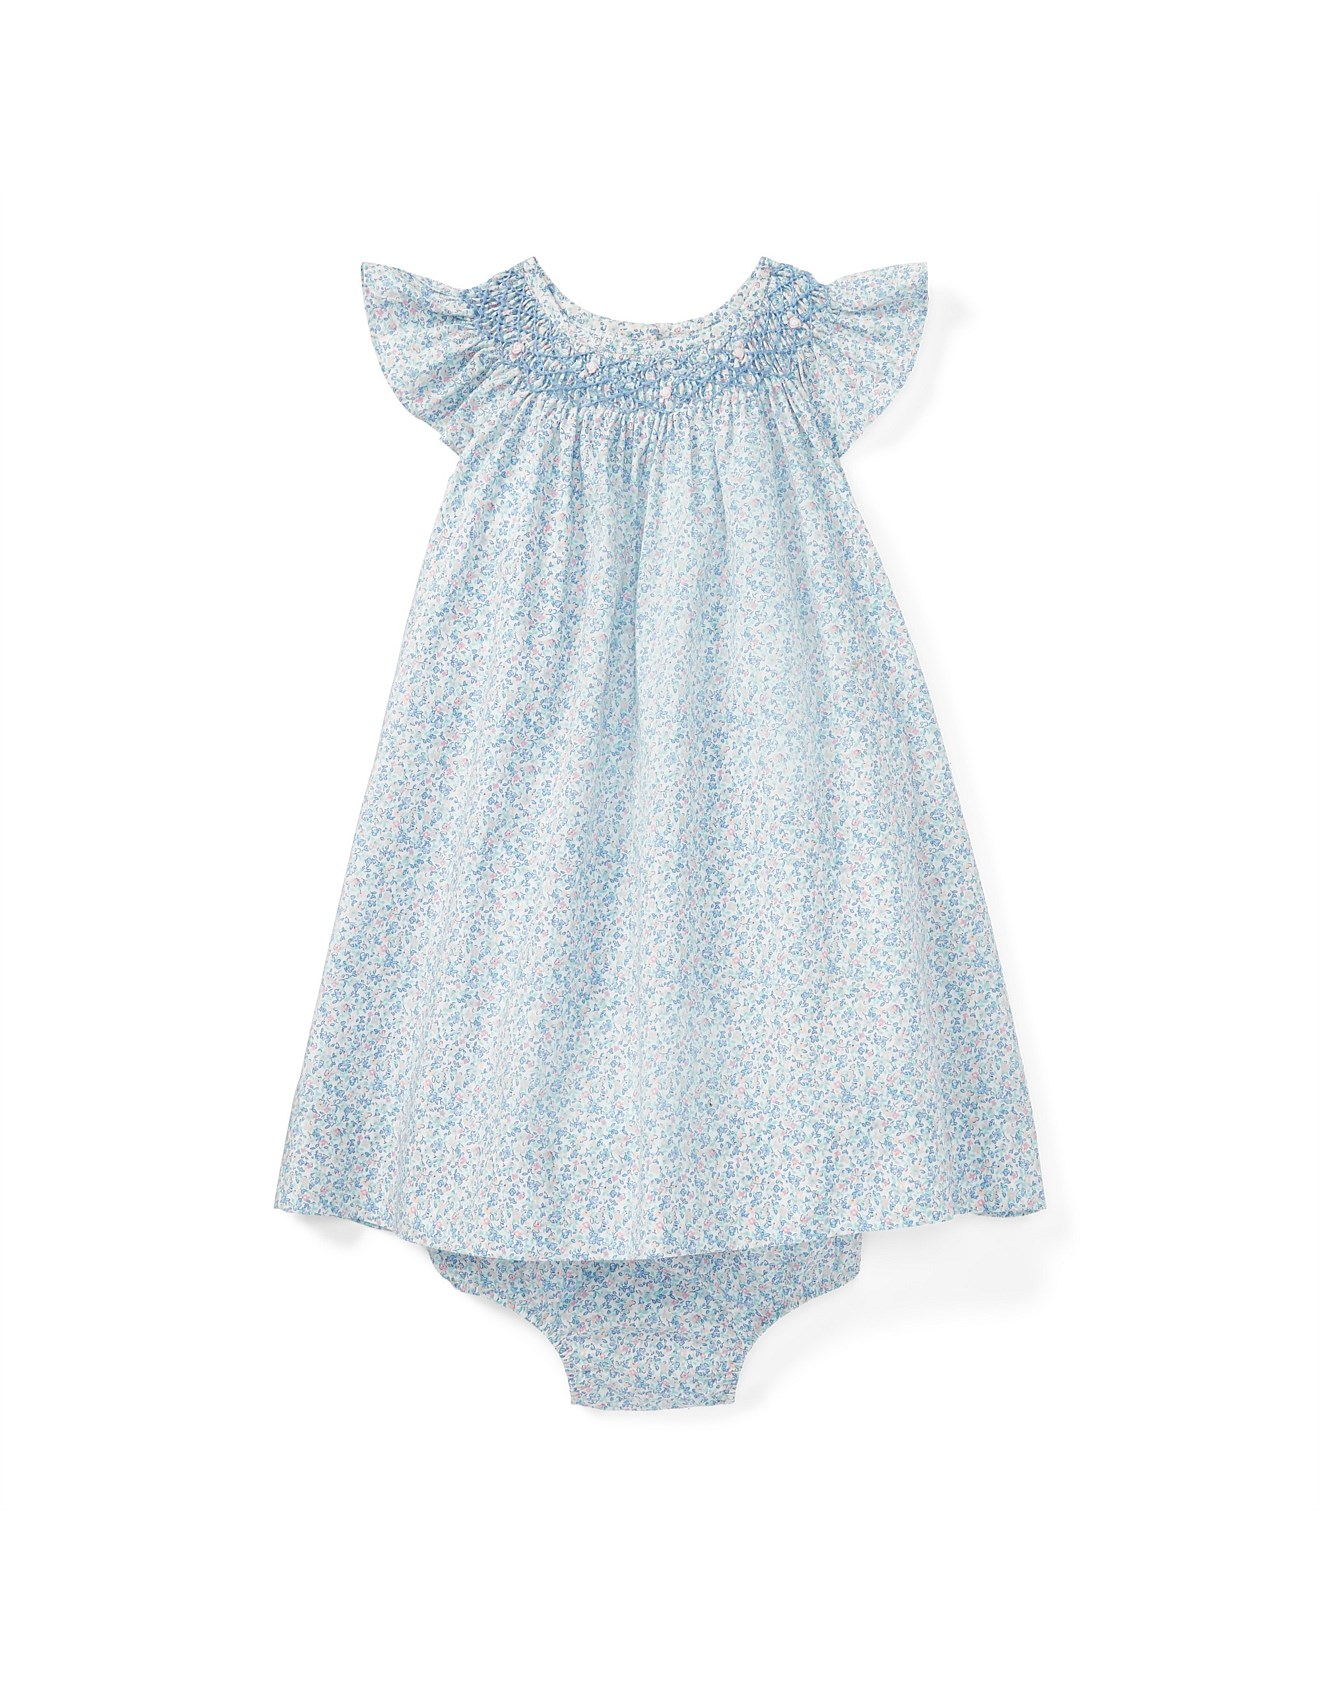 9e5d2667d Baby Clothing Sale | Buy Baby Clothes & Accessories | David Jones ...